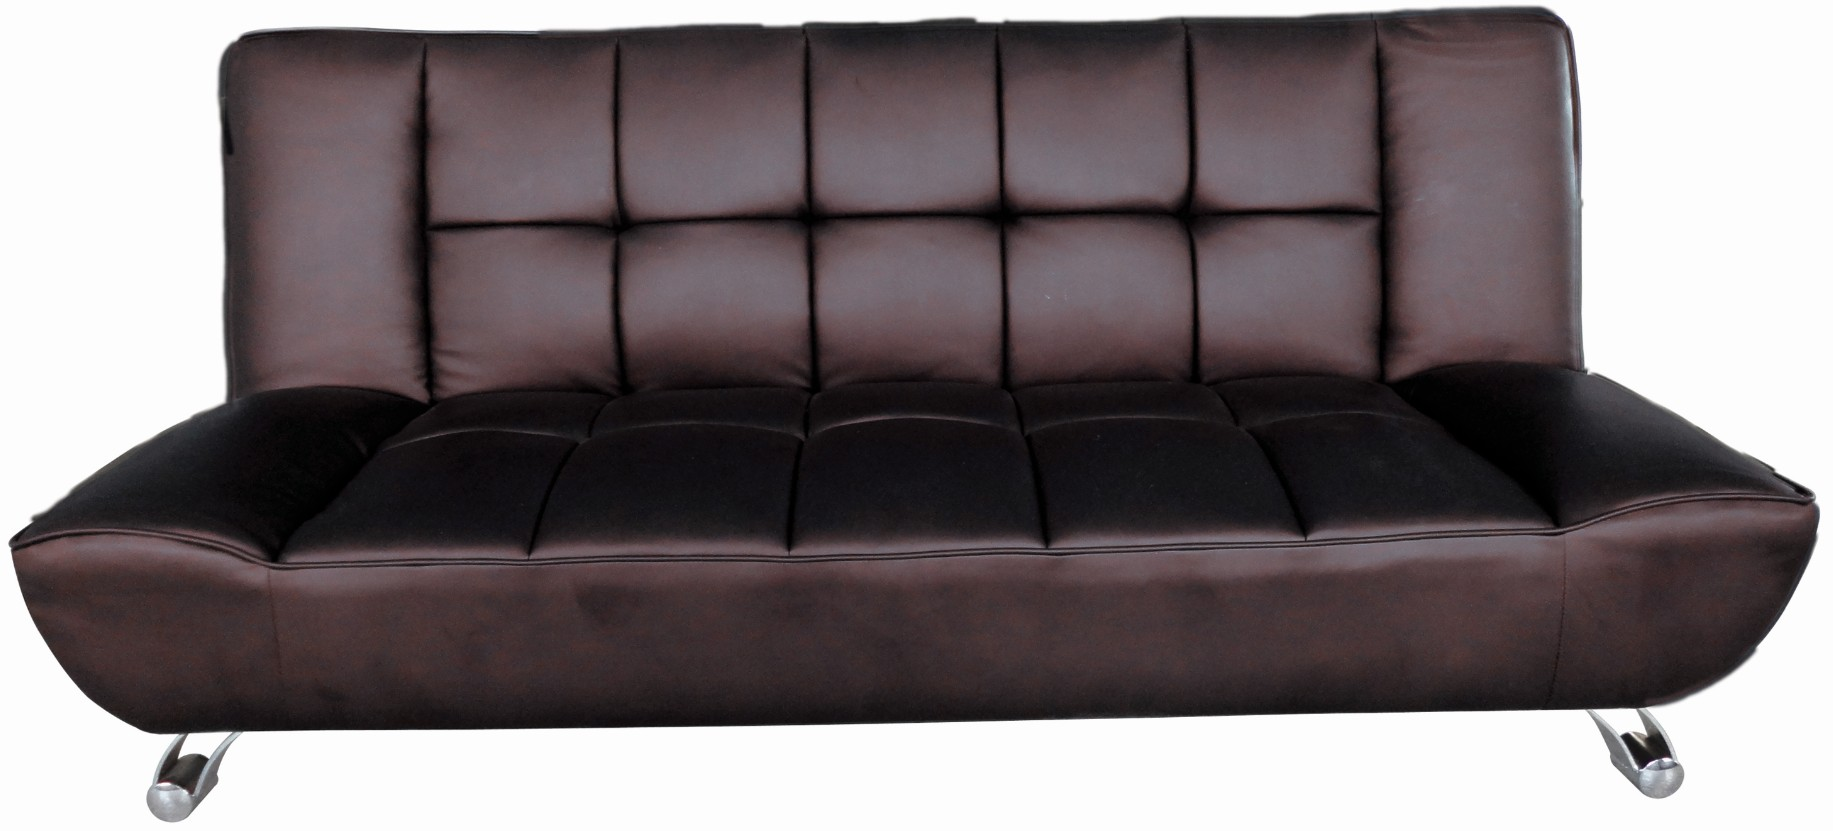 vogue faux leather brown sofa bed. Black Bedroom Furniture Sets. Home Design Ideas